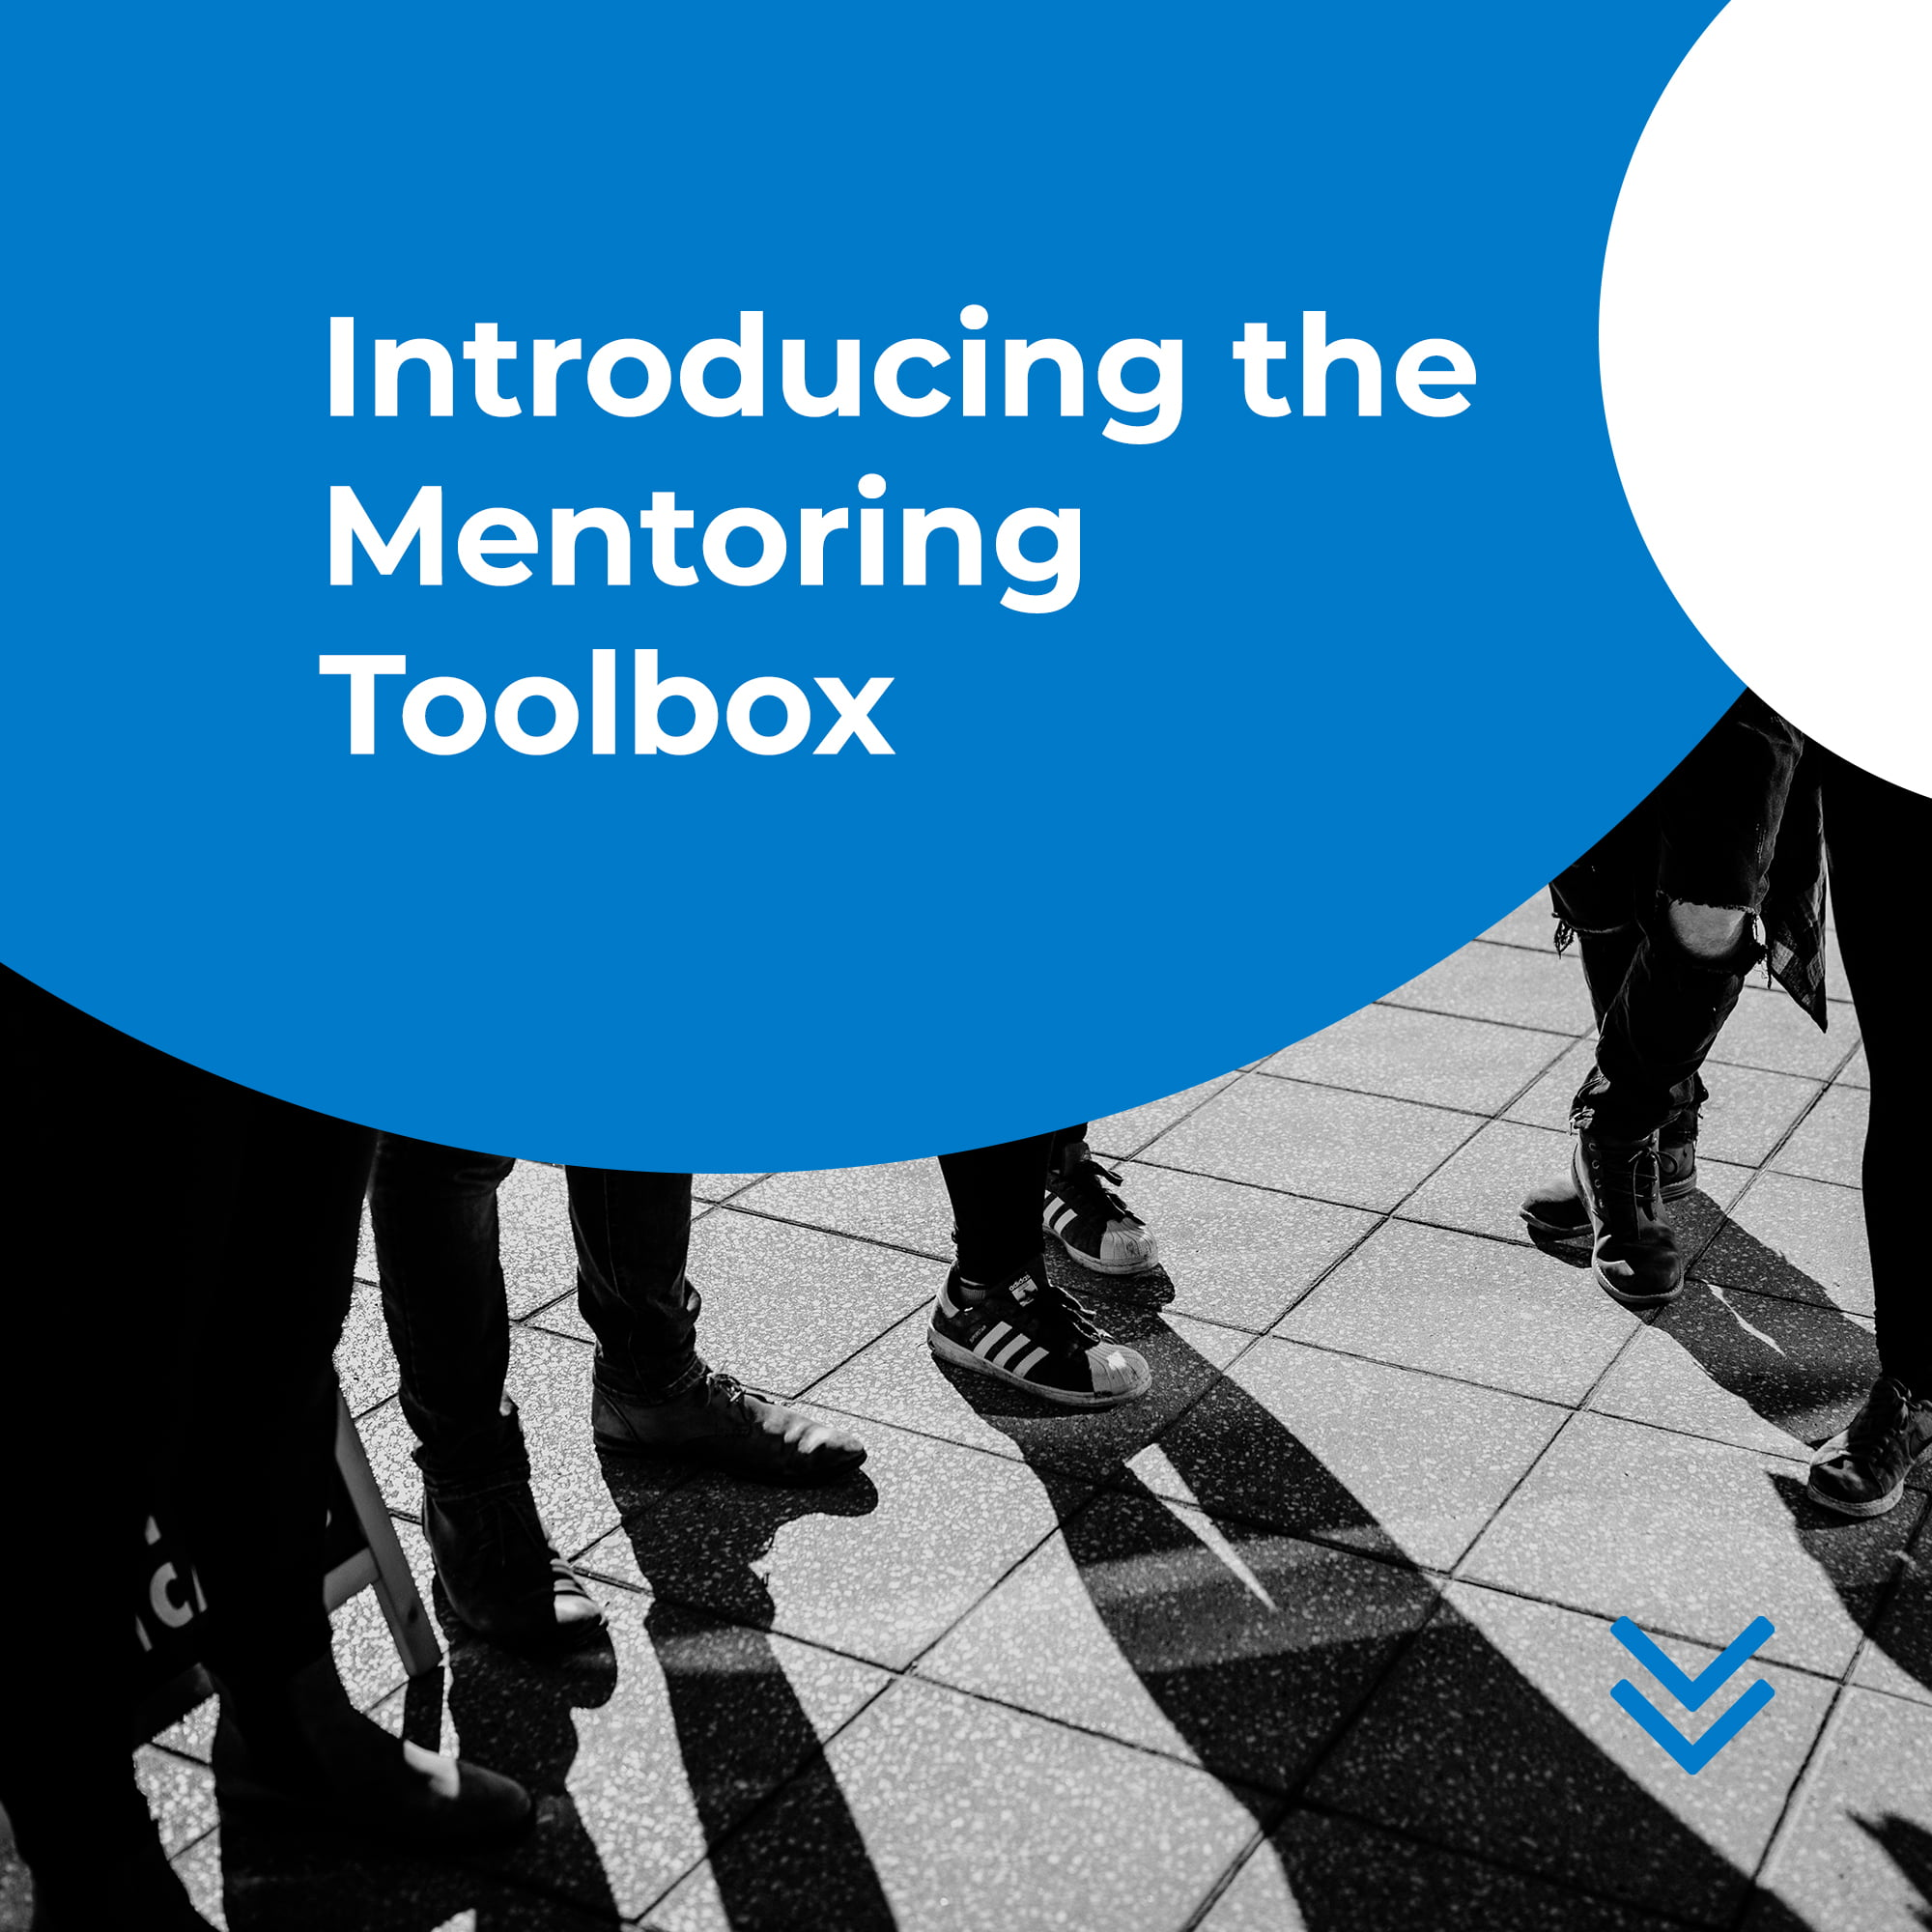 Introducing the Mentoring Toolbox